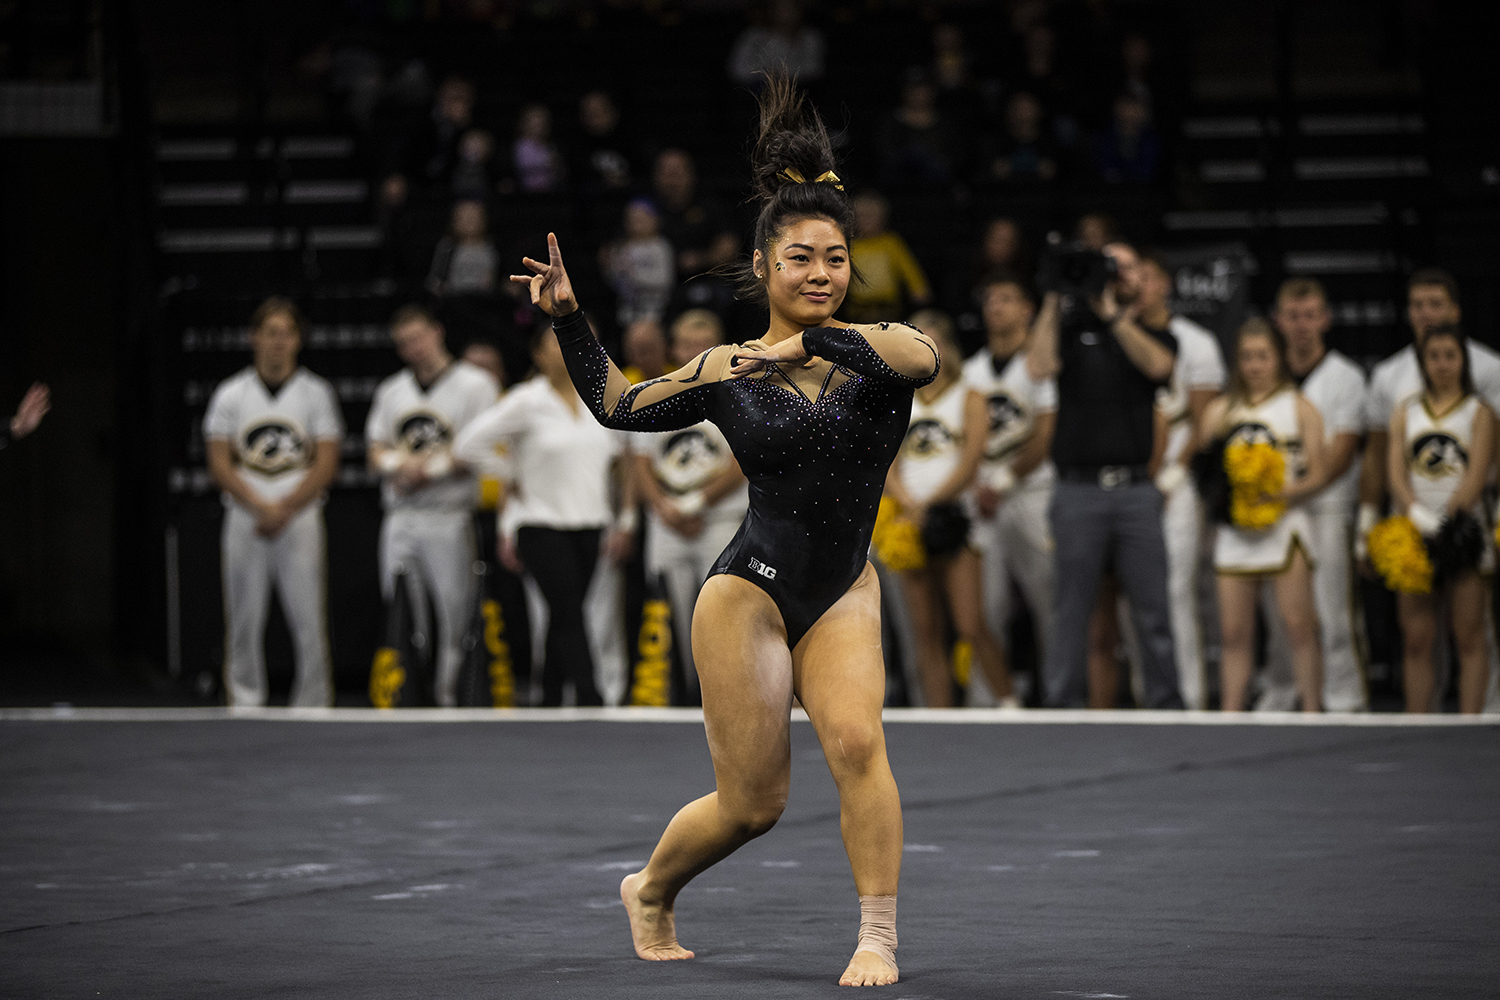 Iowa+gymnast+Misty-Jade+Carlson+performs+on+the+floor+during+the+women%27s+gymnastics+meet+vs.+SEMO+at+Carver-Hawkeye+Arena+on+Friday%2C+January+11%2C+2019.+The+GymHawks+defeated+the+Redhawks+194.700-180.925.+